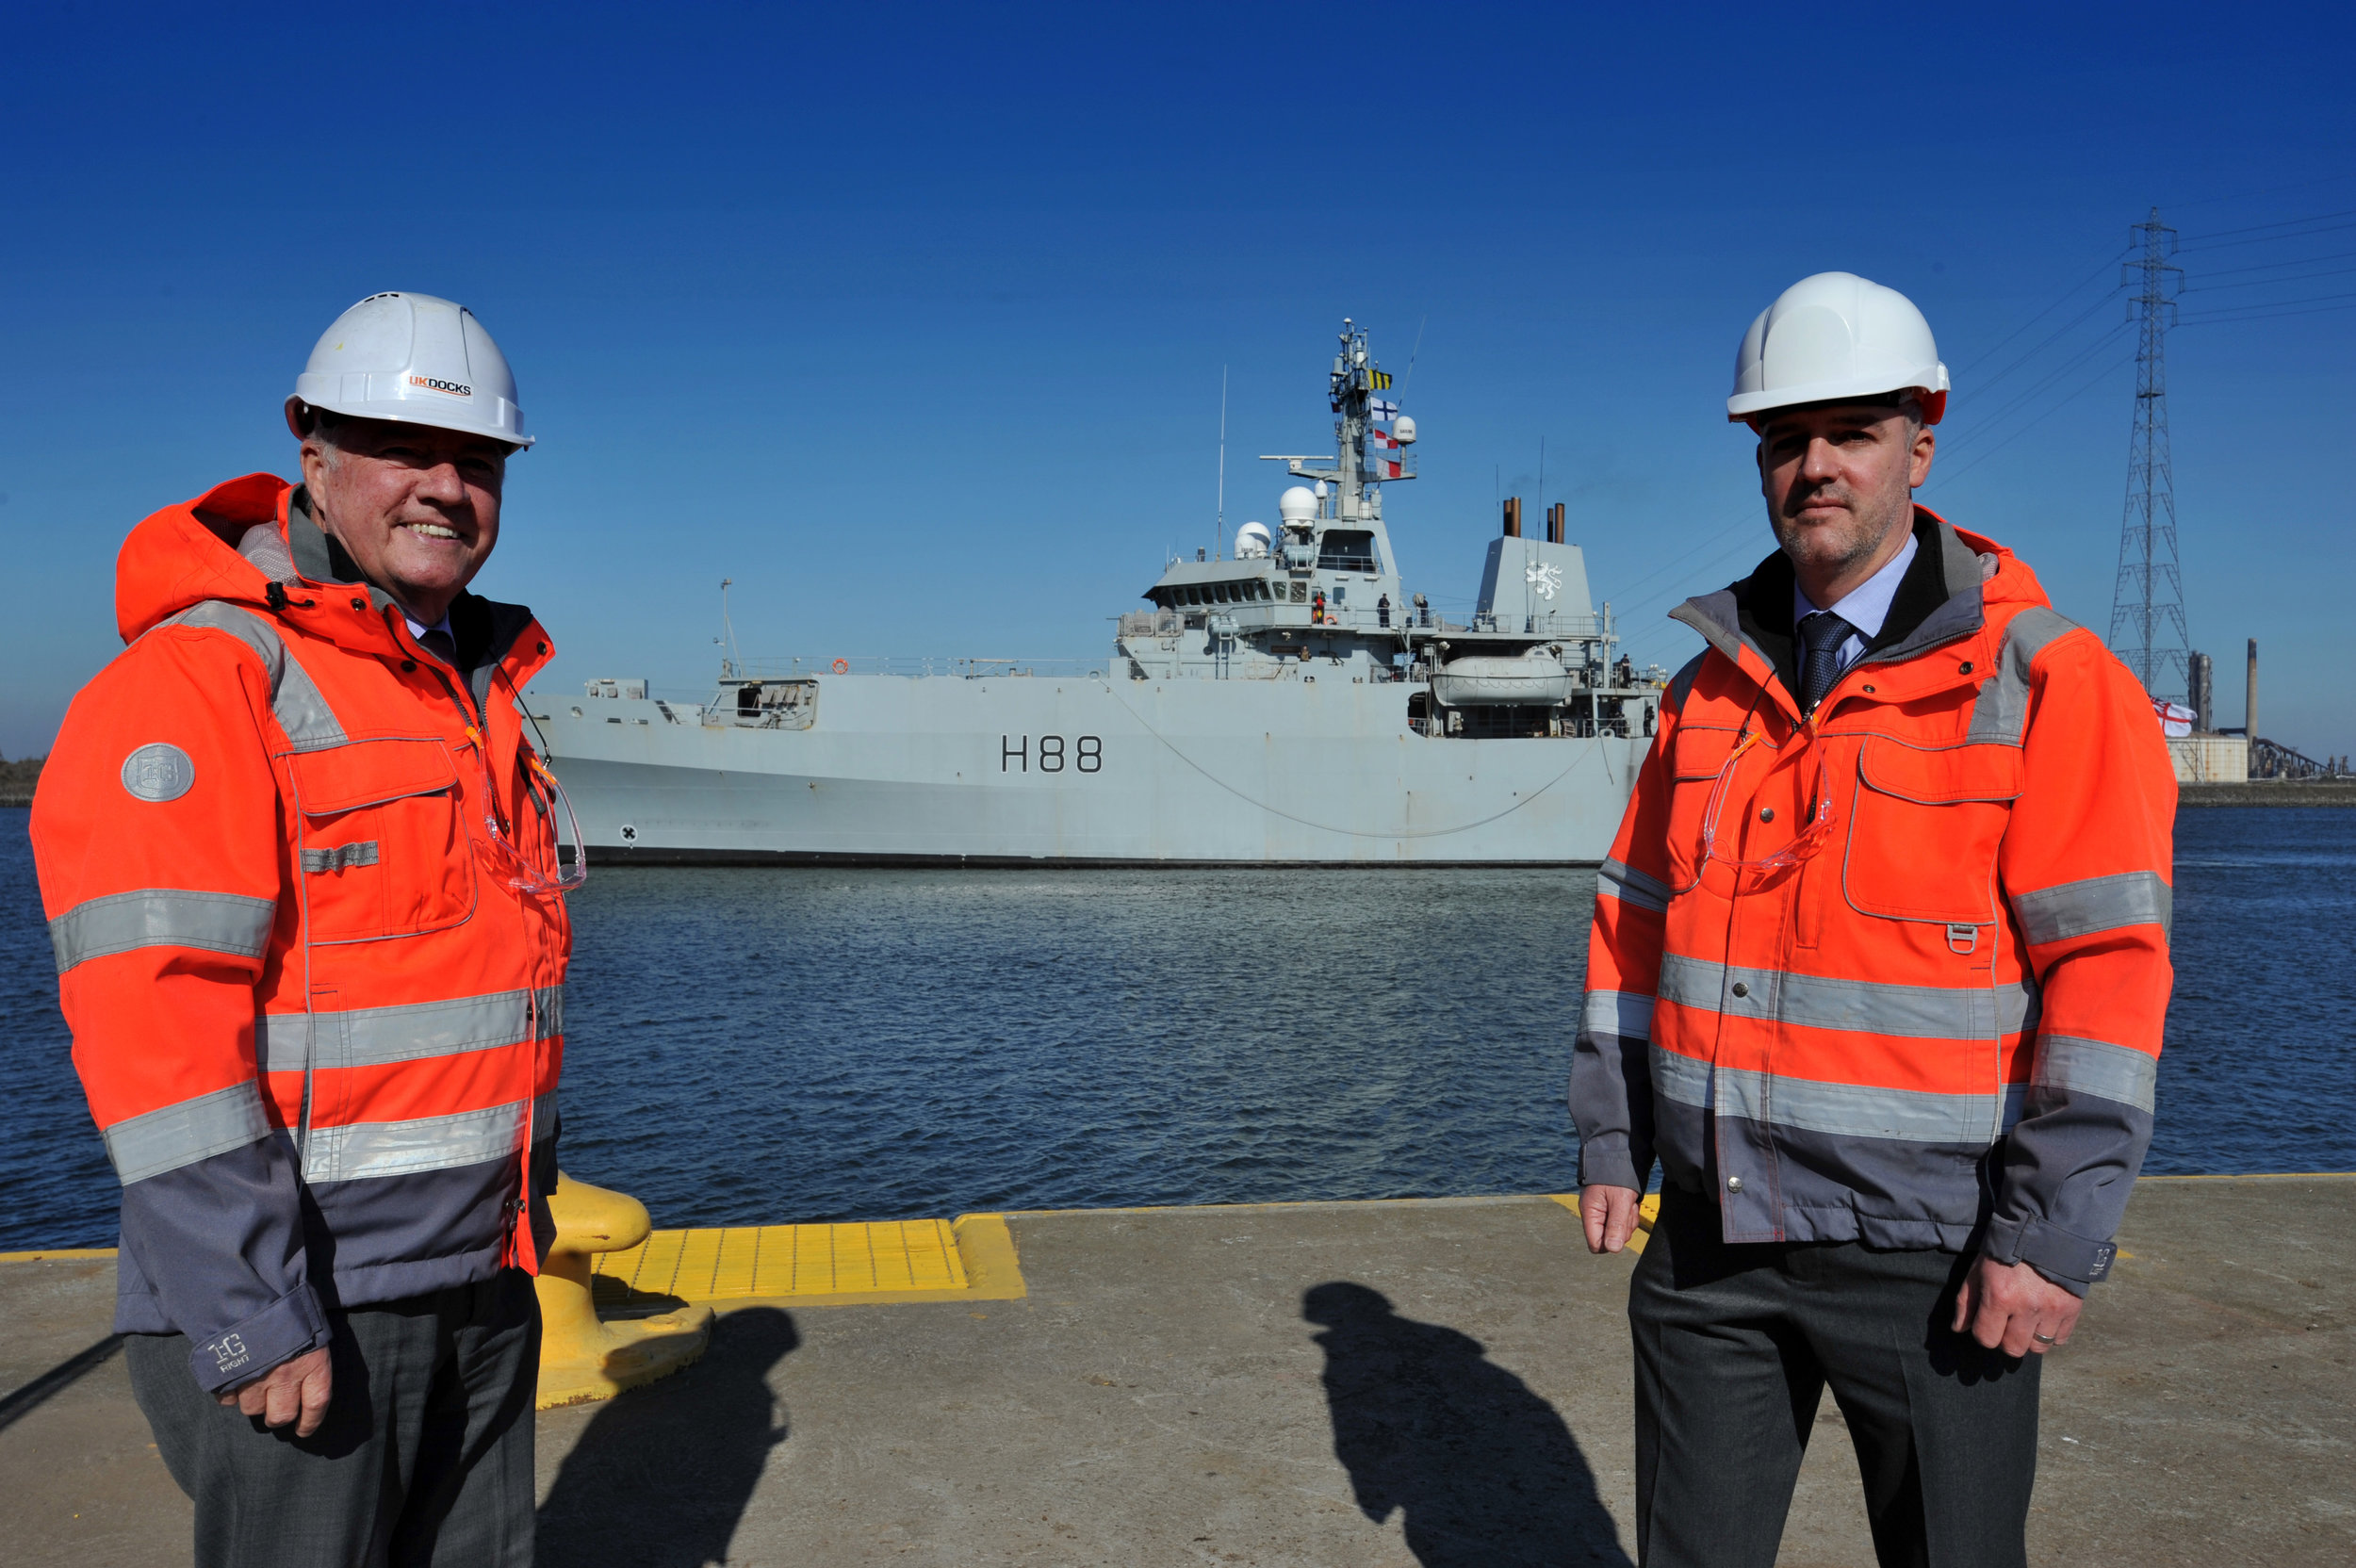 UK Docks begins £150m contract maintaining Royal Navy marine research vessels.